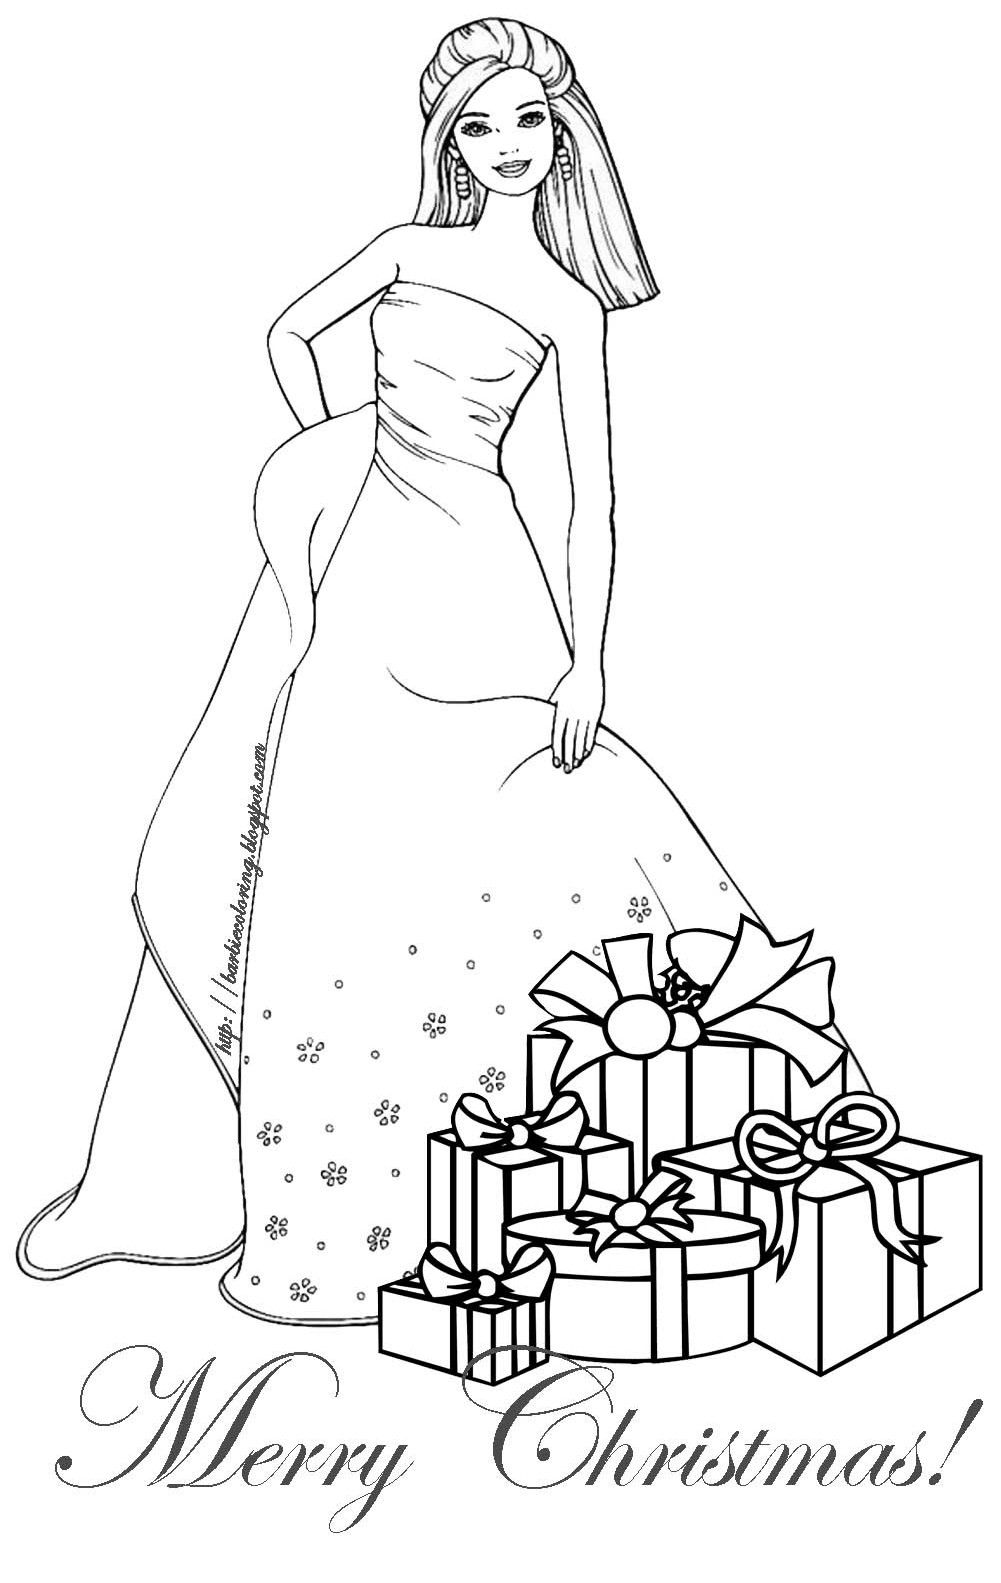 Barbie Christmas Coloring Page Barbie Coloring Pages Barbie